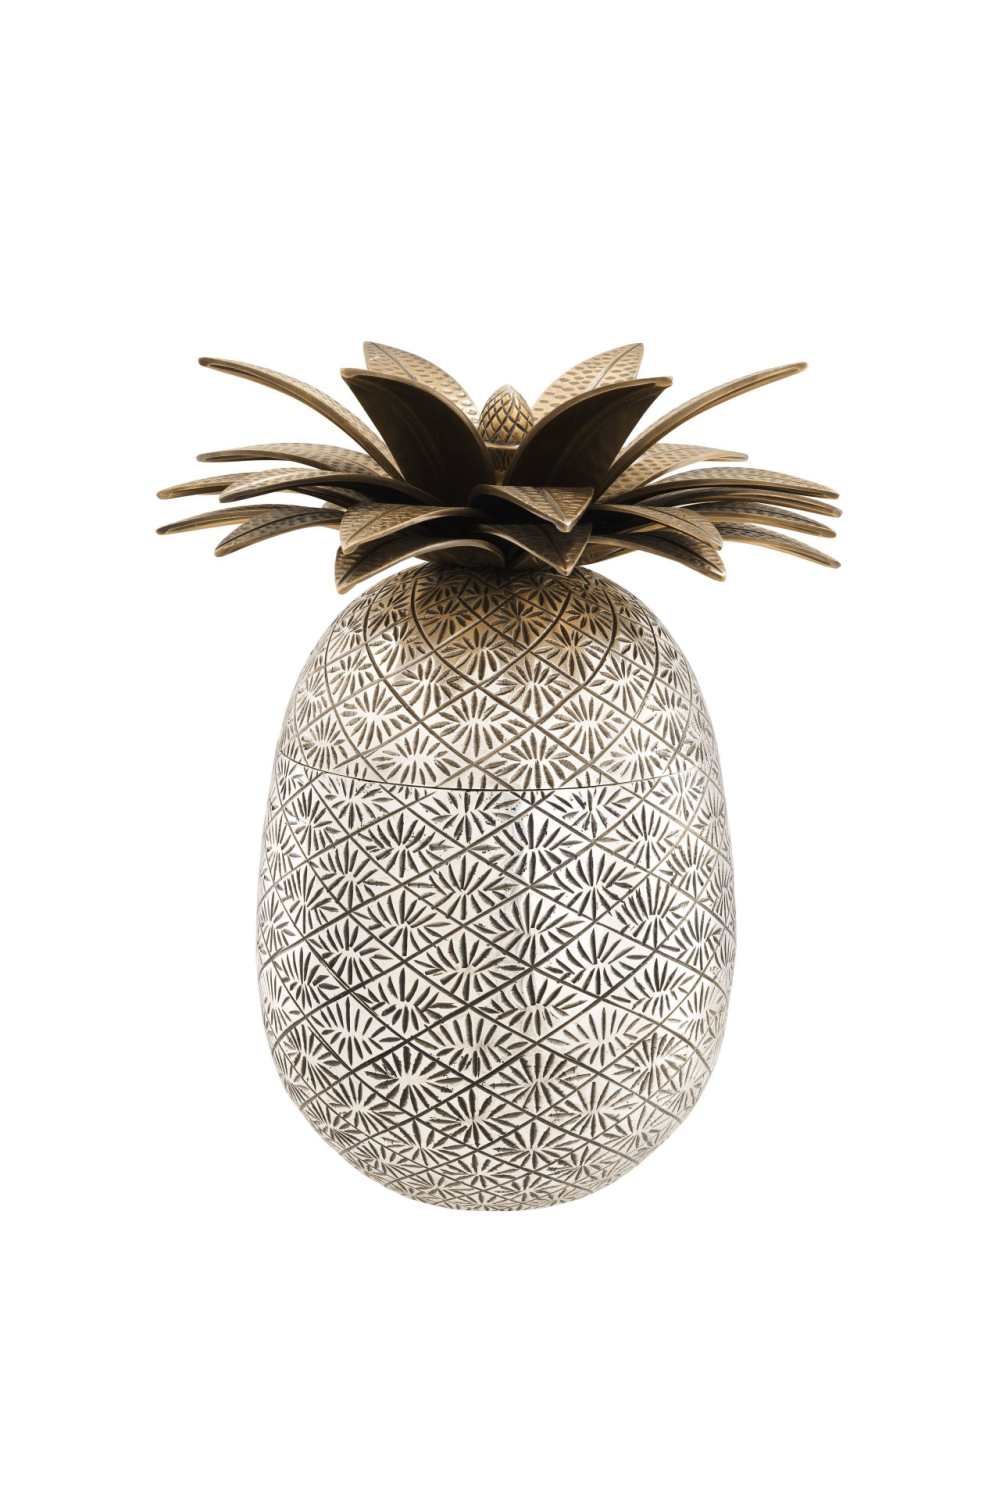 Brass Decorative Box | Eichholtz Pineapple | #1 Eichholtz Retailer